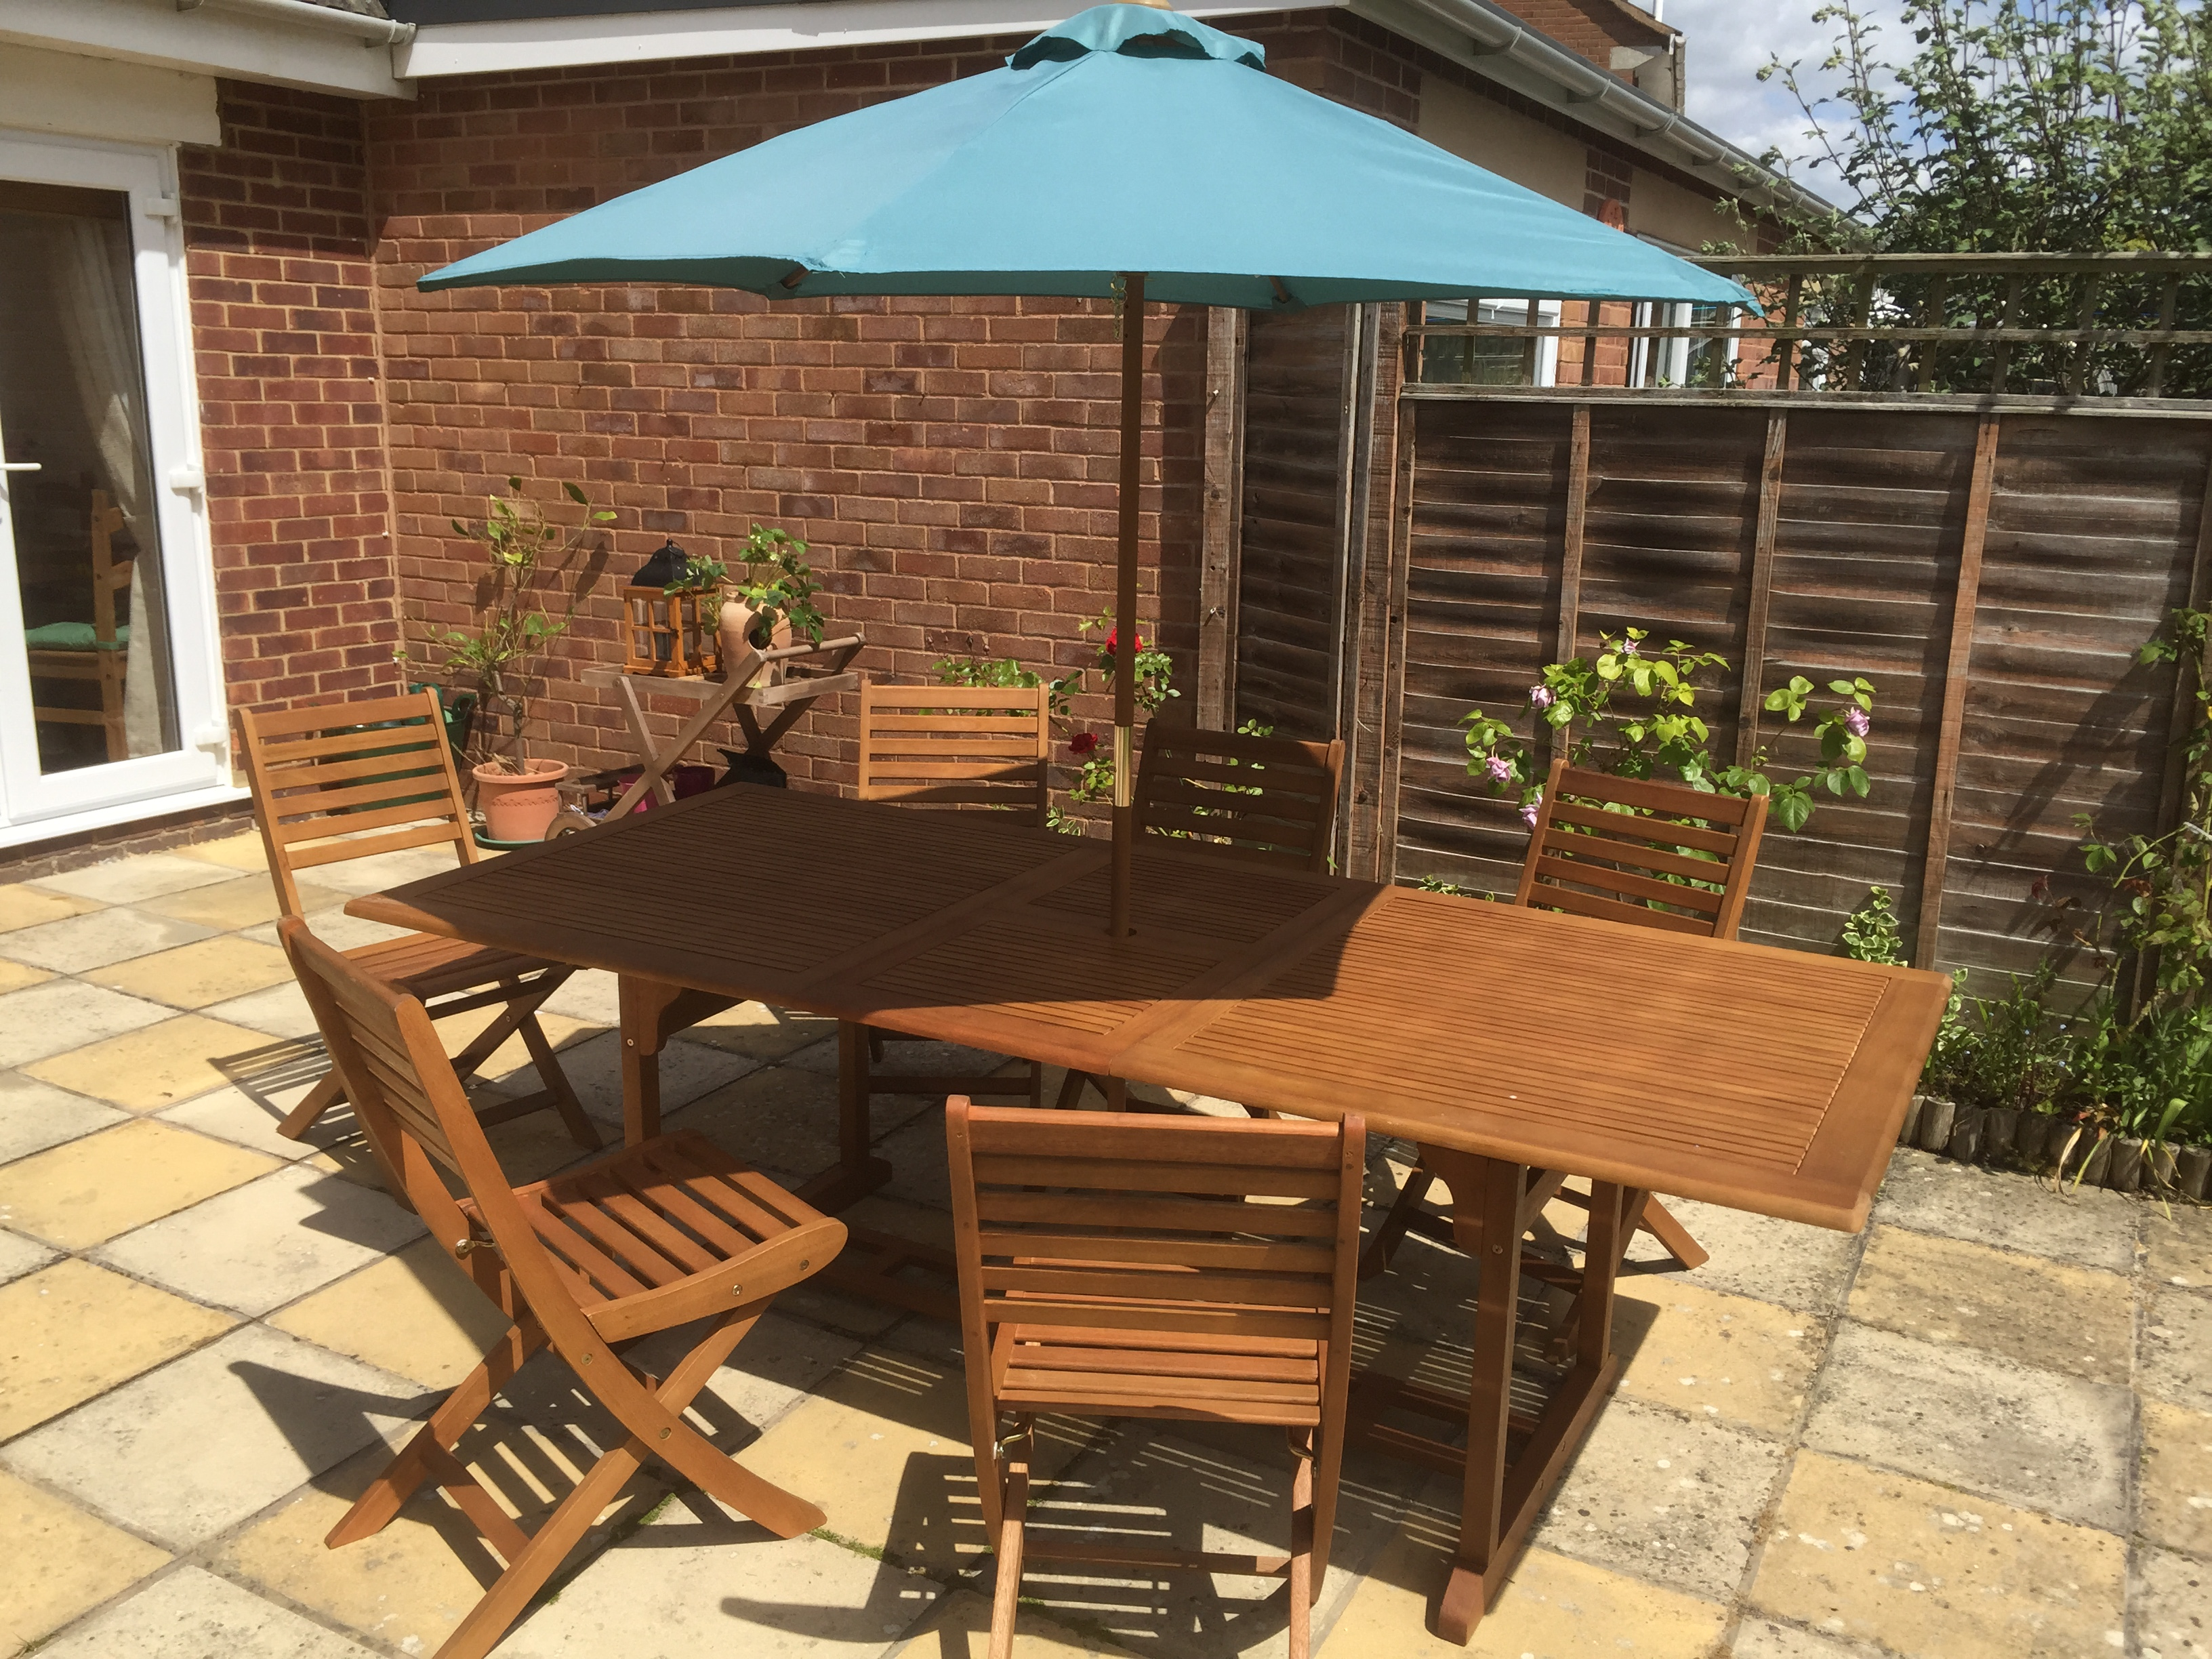 How to restore weathered wooden garden furniture – a simple guide